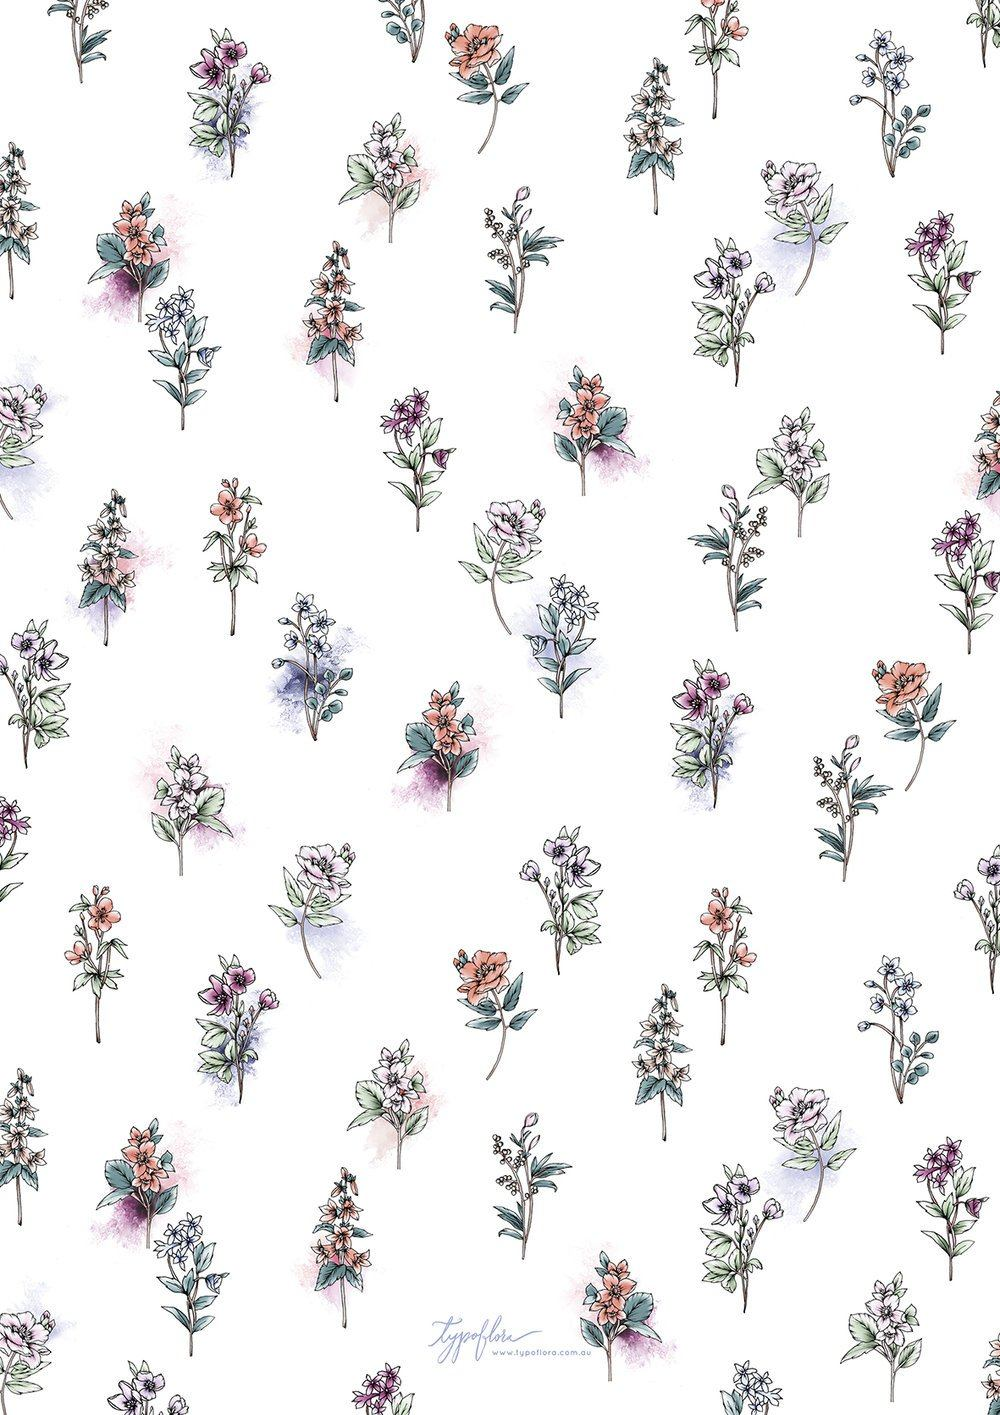 Botanical Garden Giftwrap - Wrapping Papers - Typoflora - Naiise